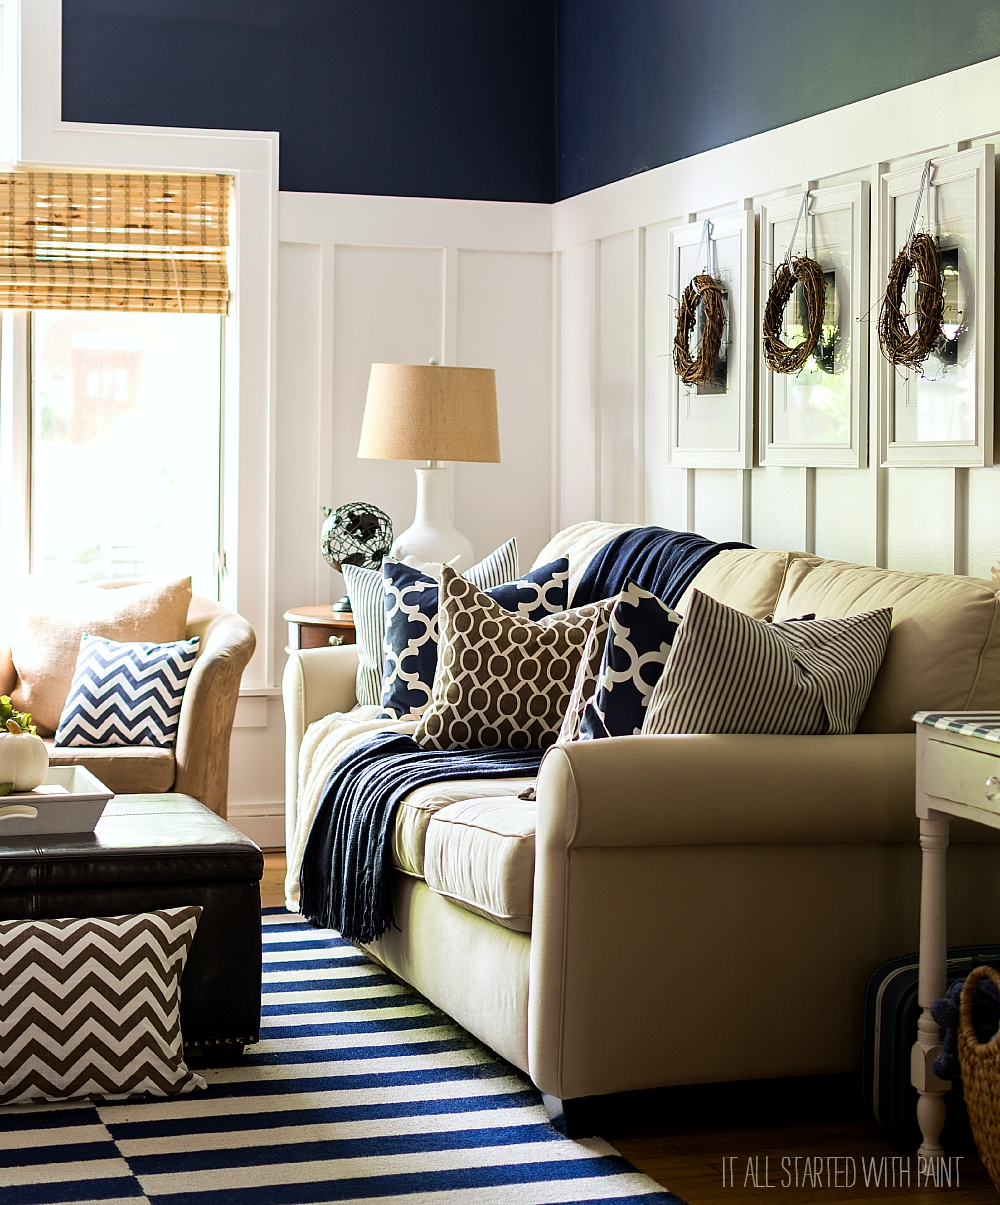 Fall decorating ideas using brown and navy neutrals board and batten living room decorated for